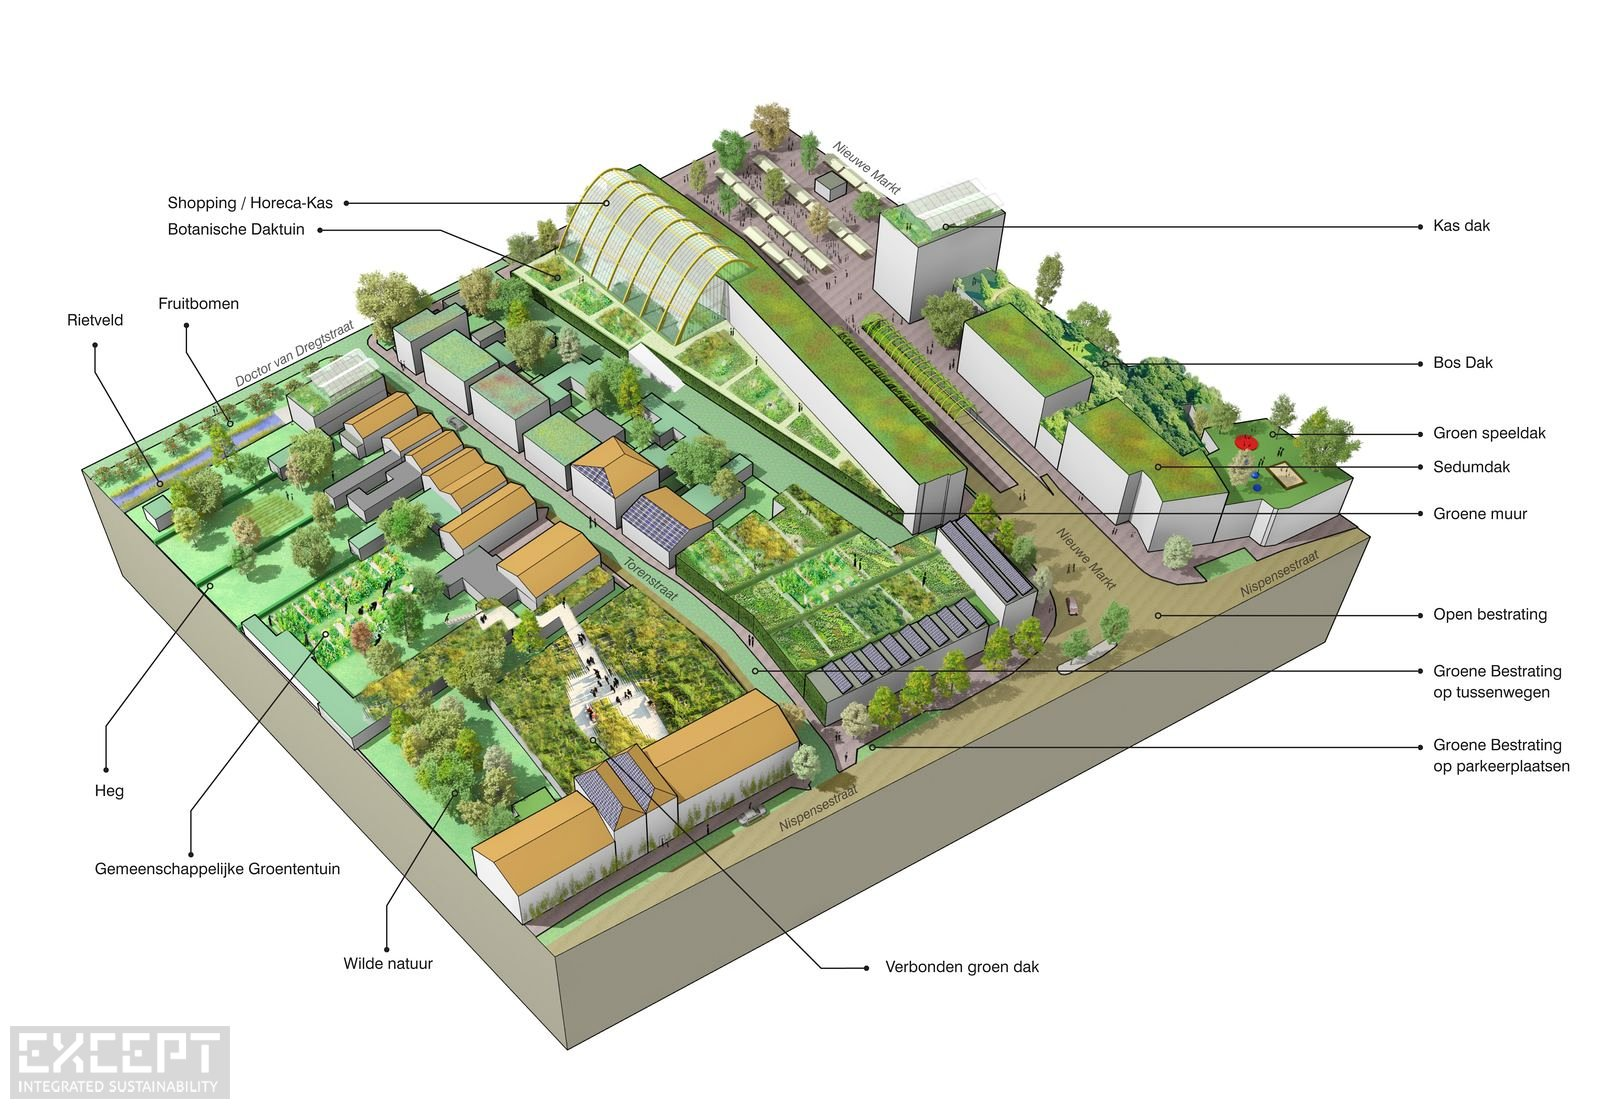 Urban diagram - Urban isometric diagram